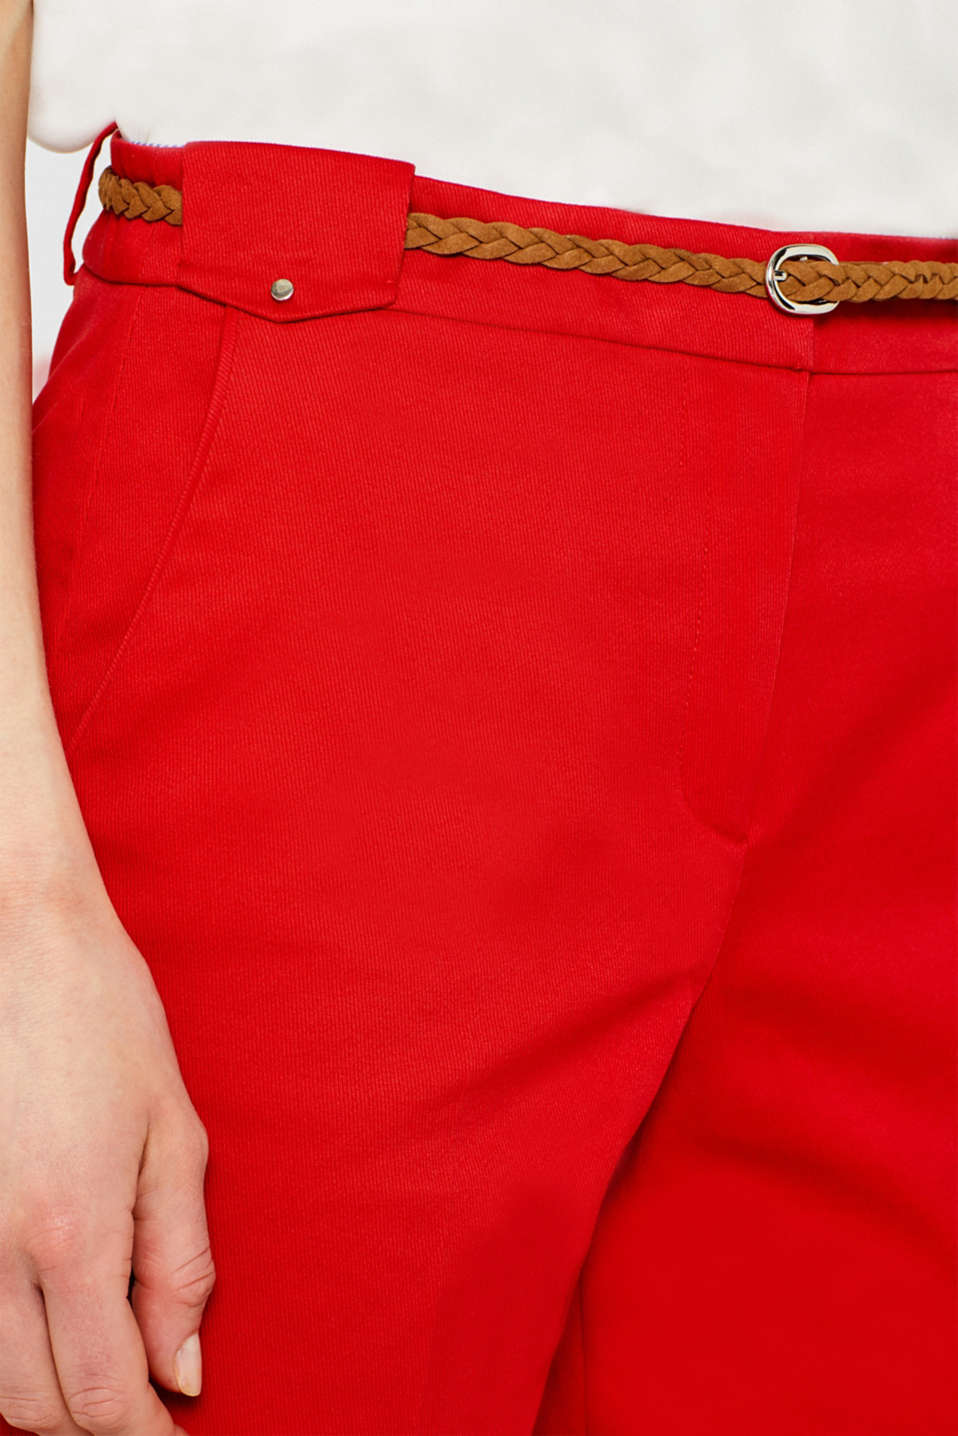 Shorts woven, ORANGE RED, detail image number 2